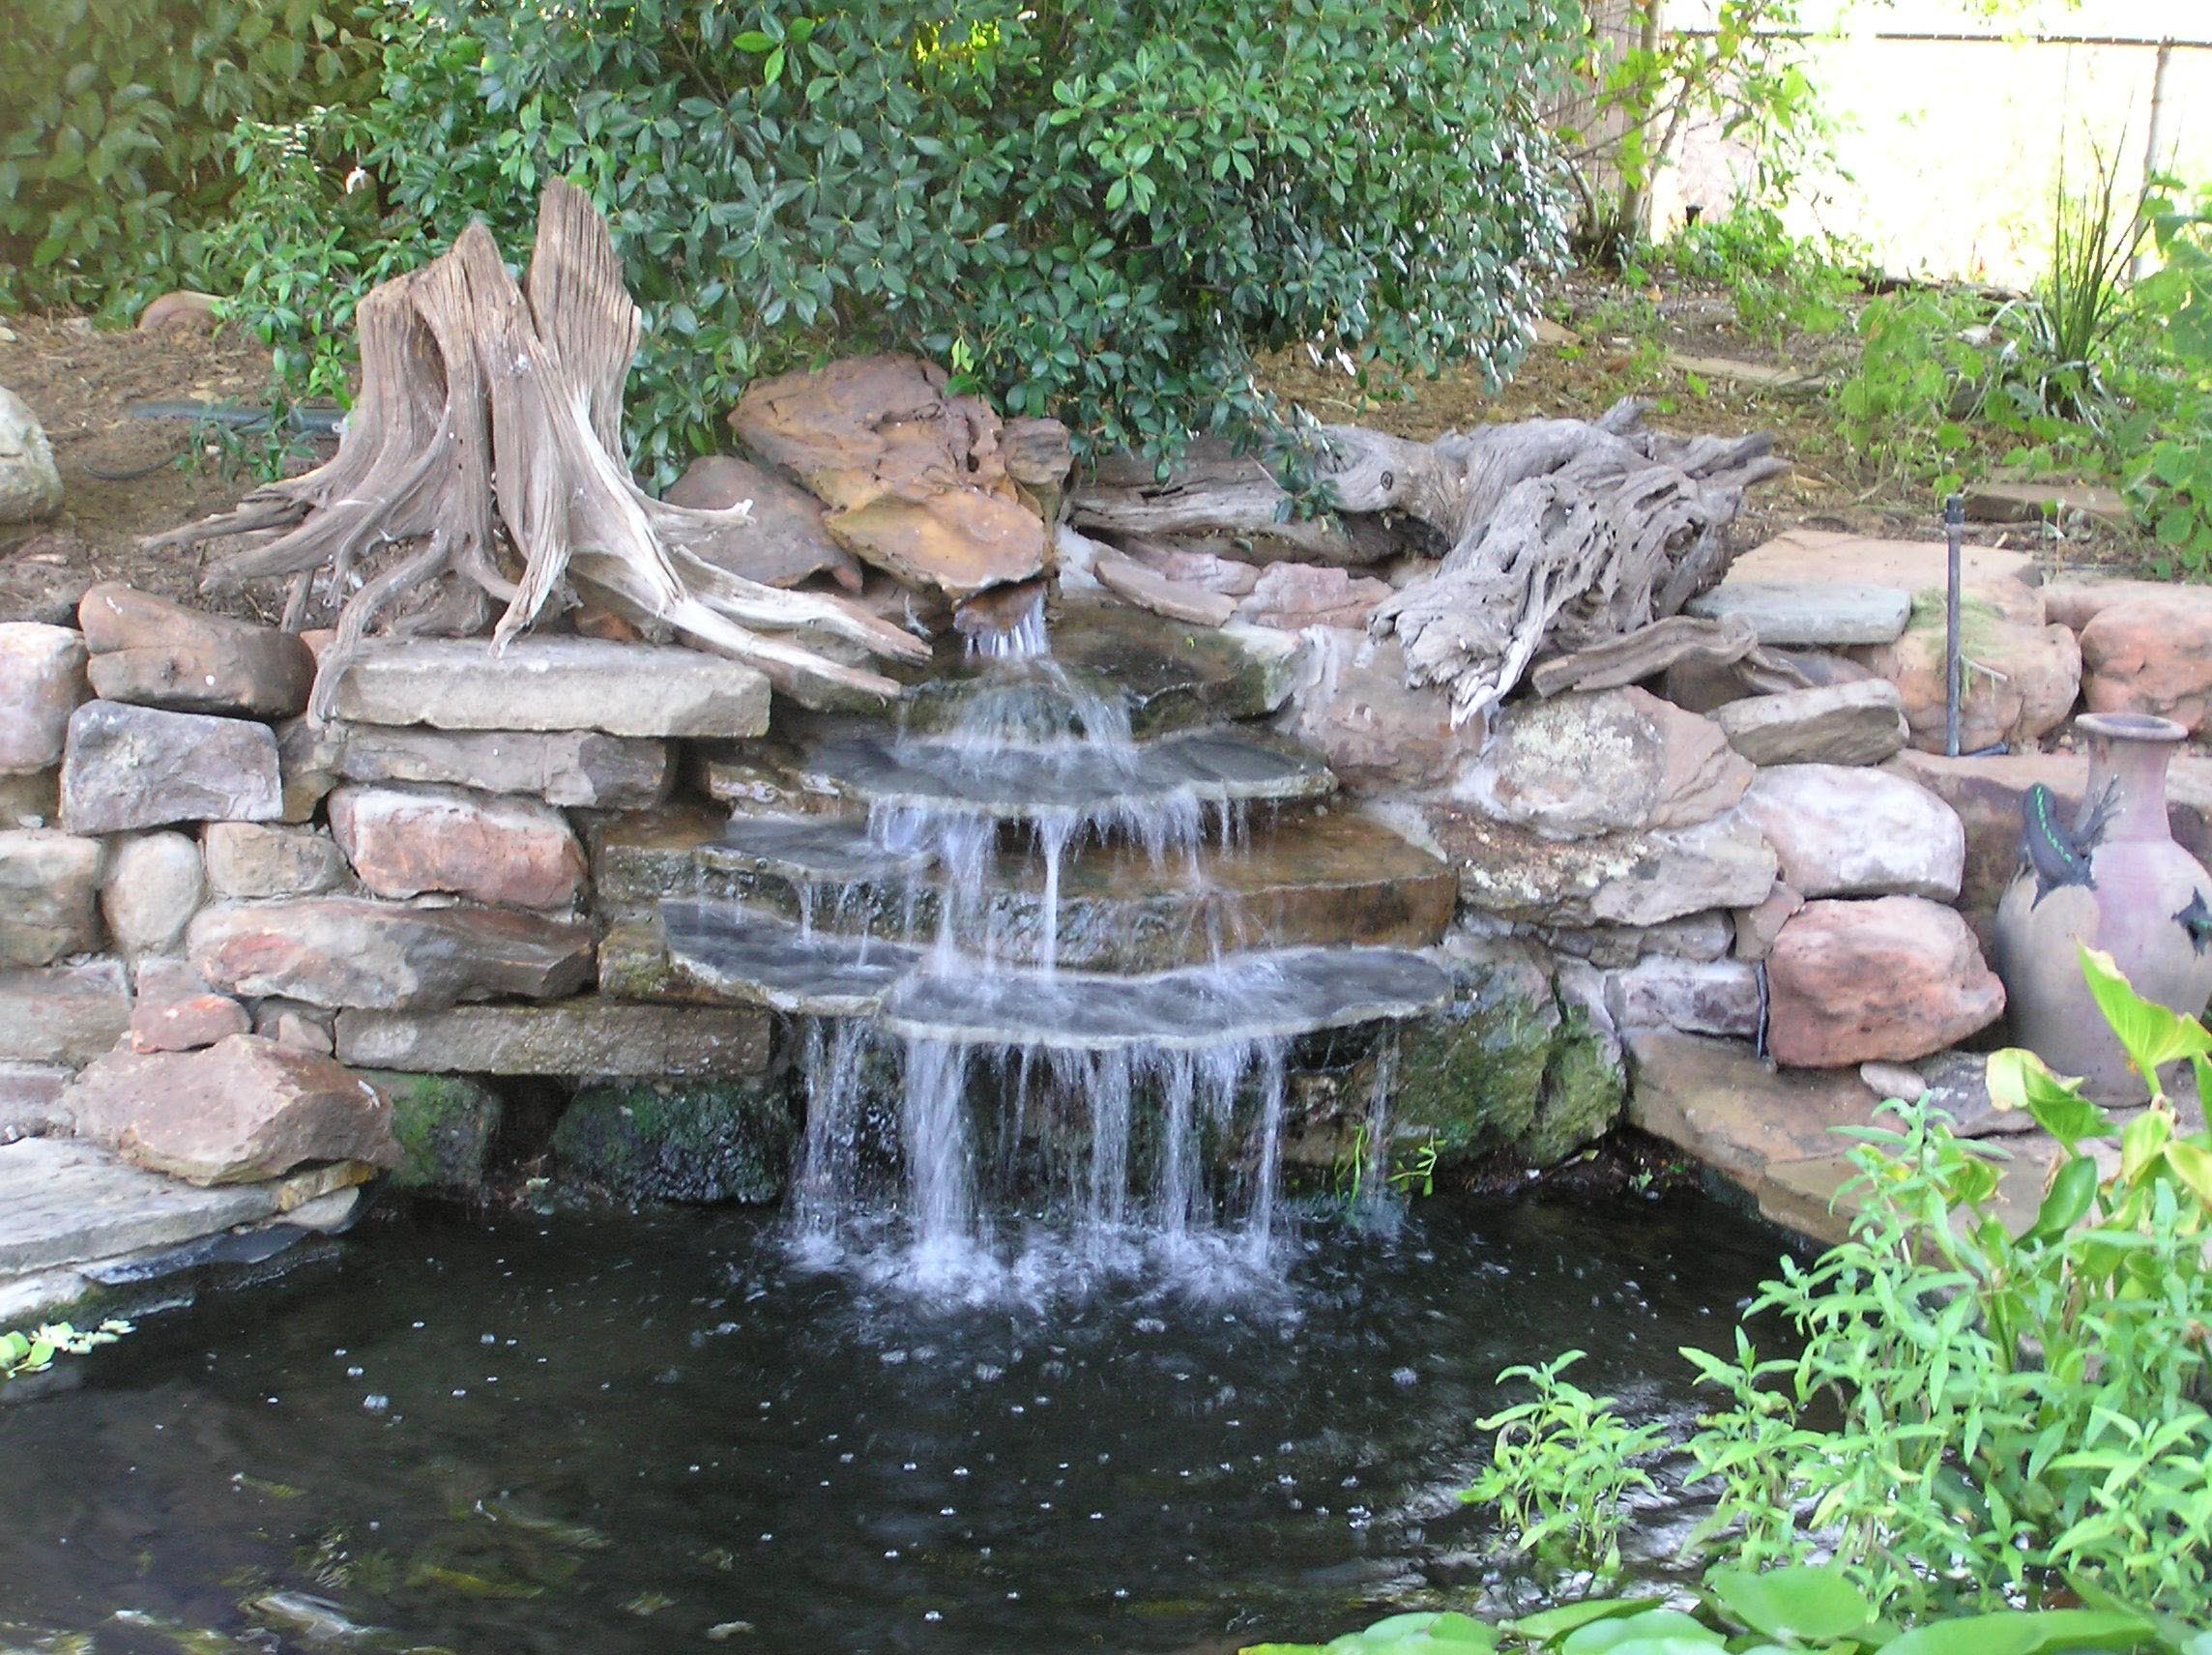 Garden pond waterfall designs backyard design ideas for Making a garden pond and waterfall